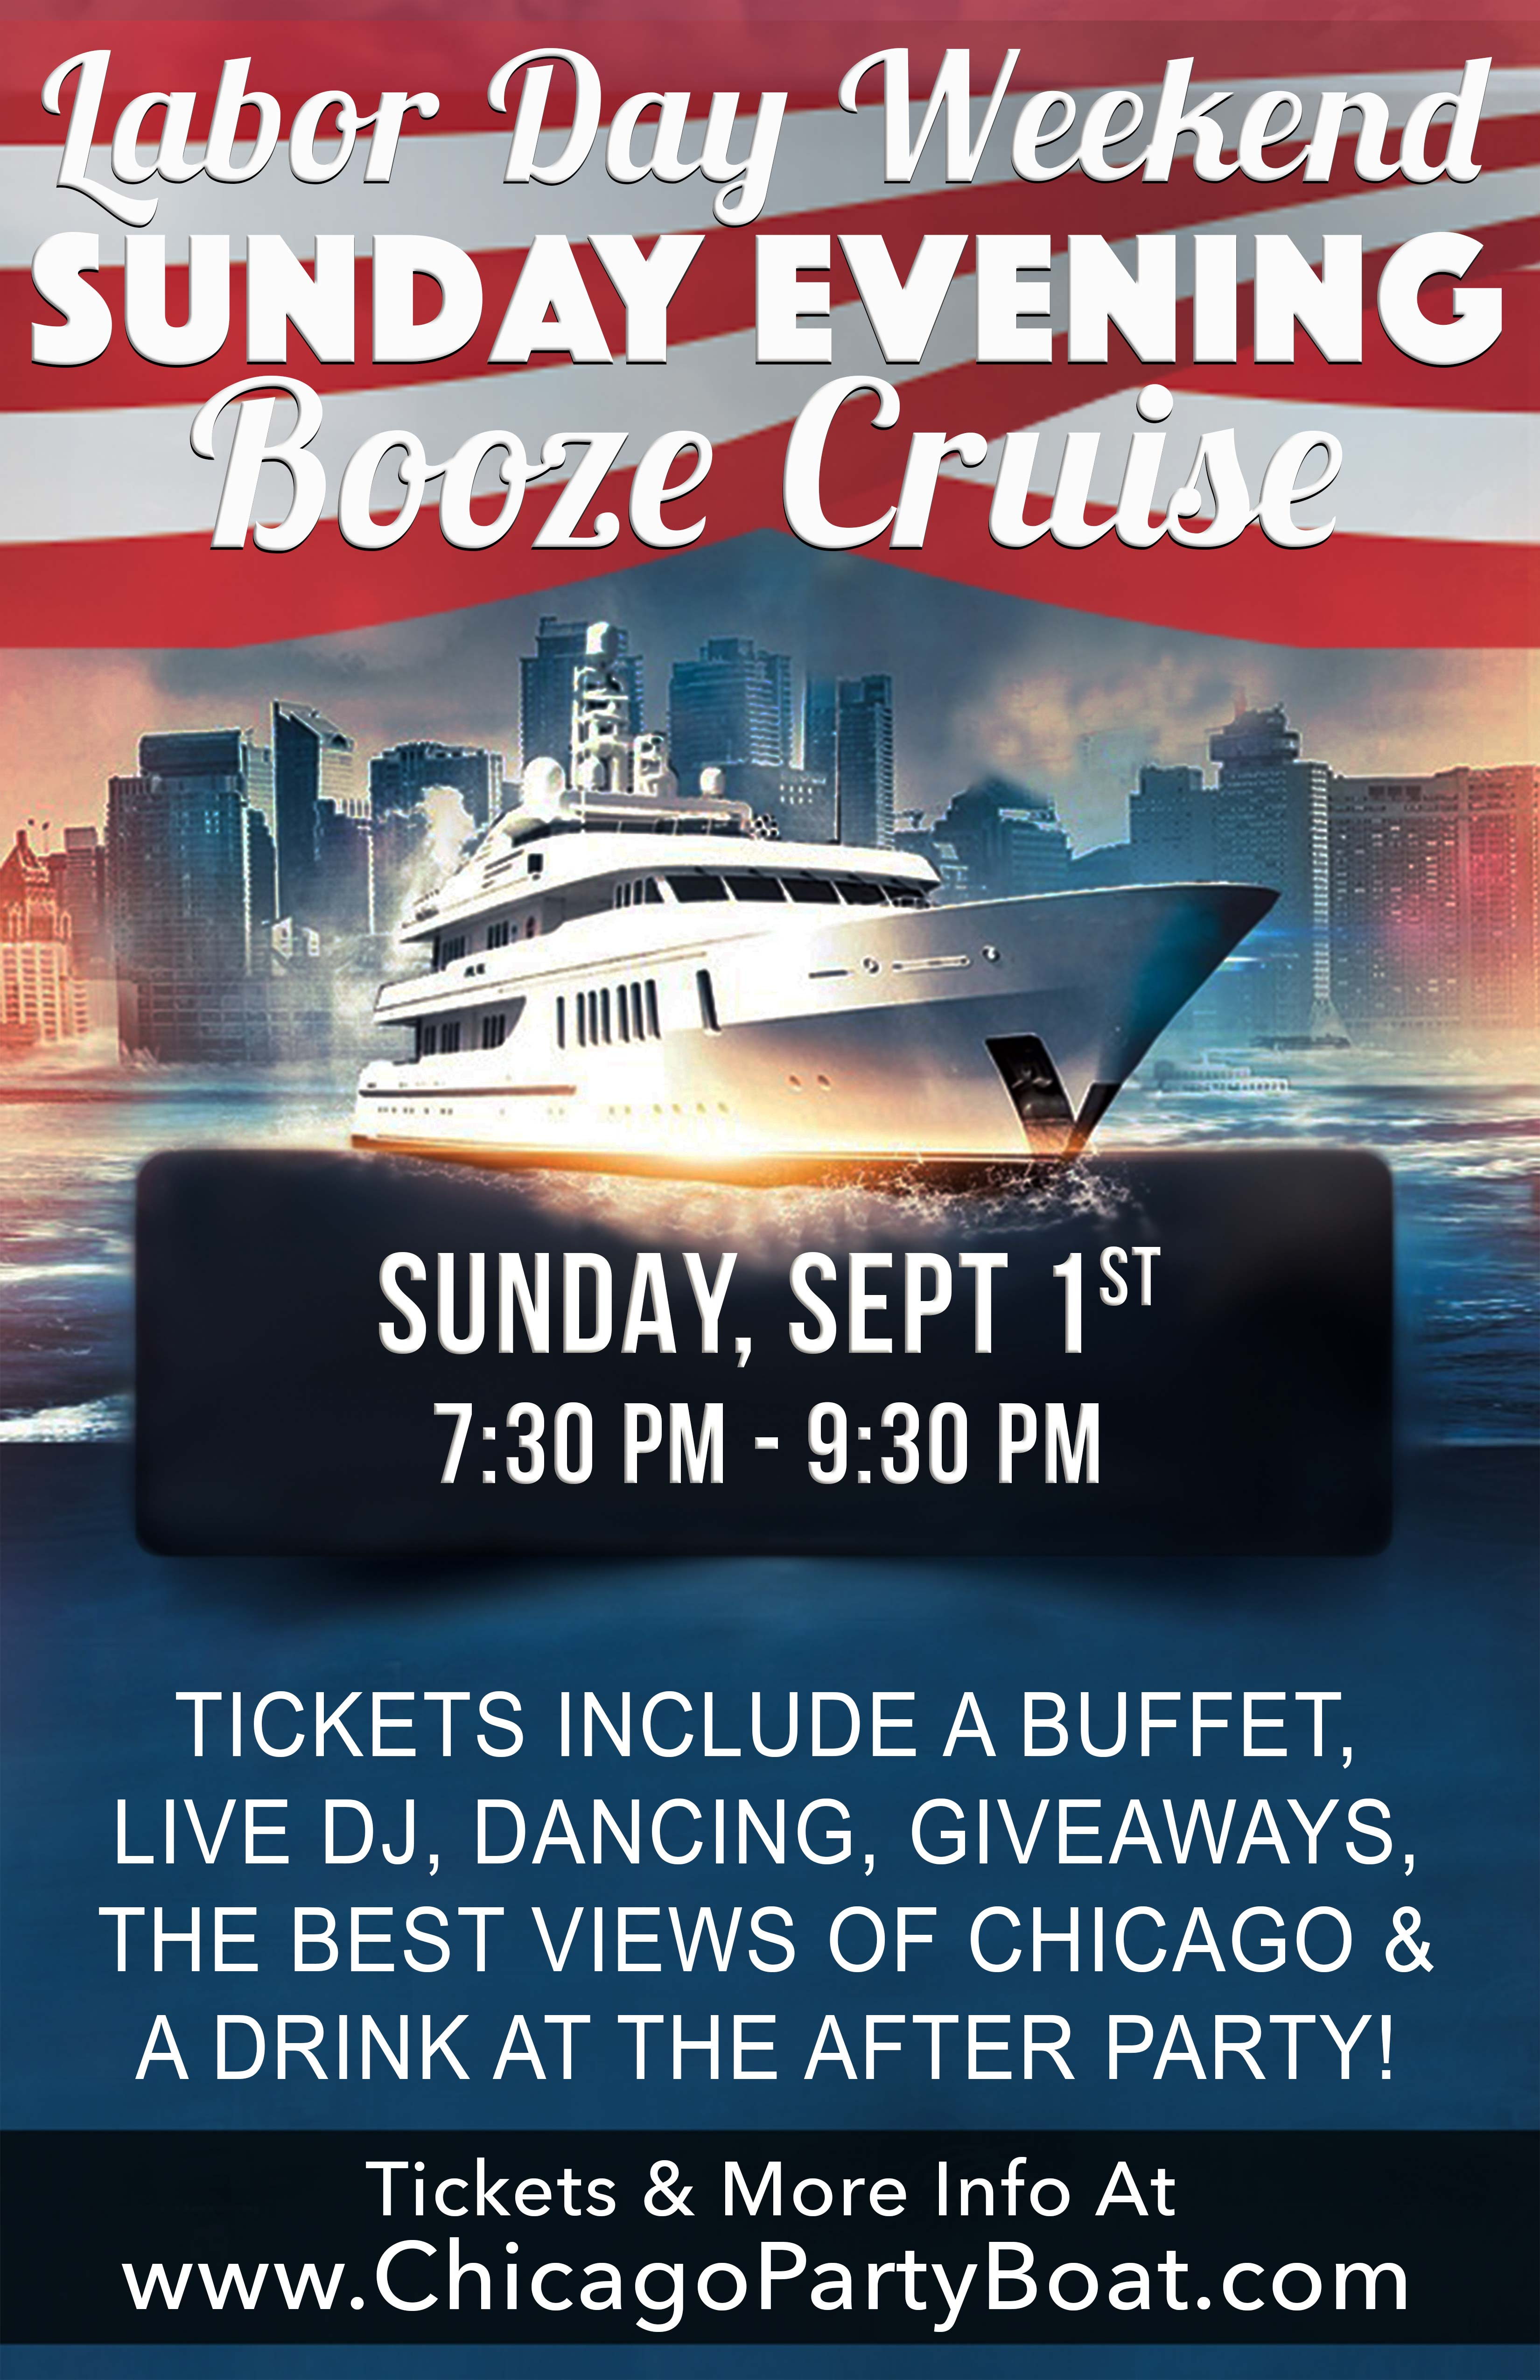 Labor Day Weekend Sunday Evening Booze Cruise - Tickets include a Buffet, Live DJ, Dancing, Giveaways the best views of Chicago and a Drink at the After Party!